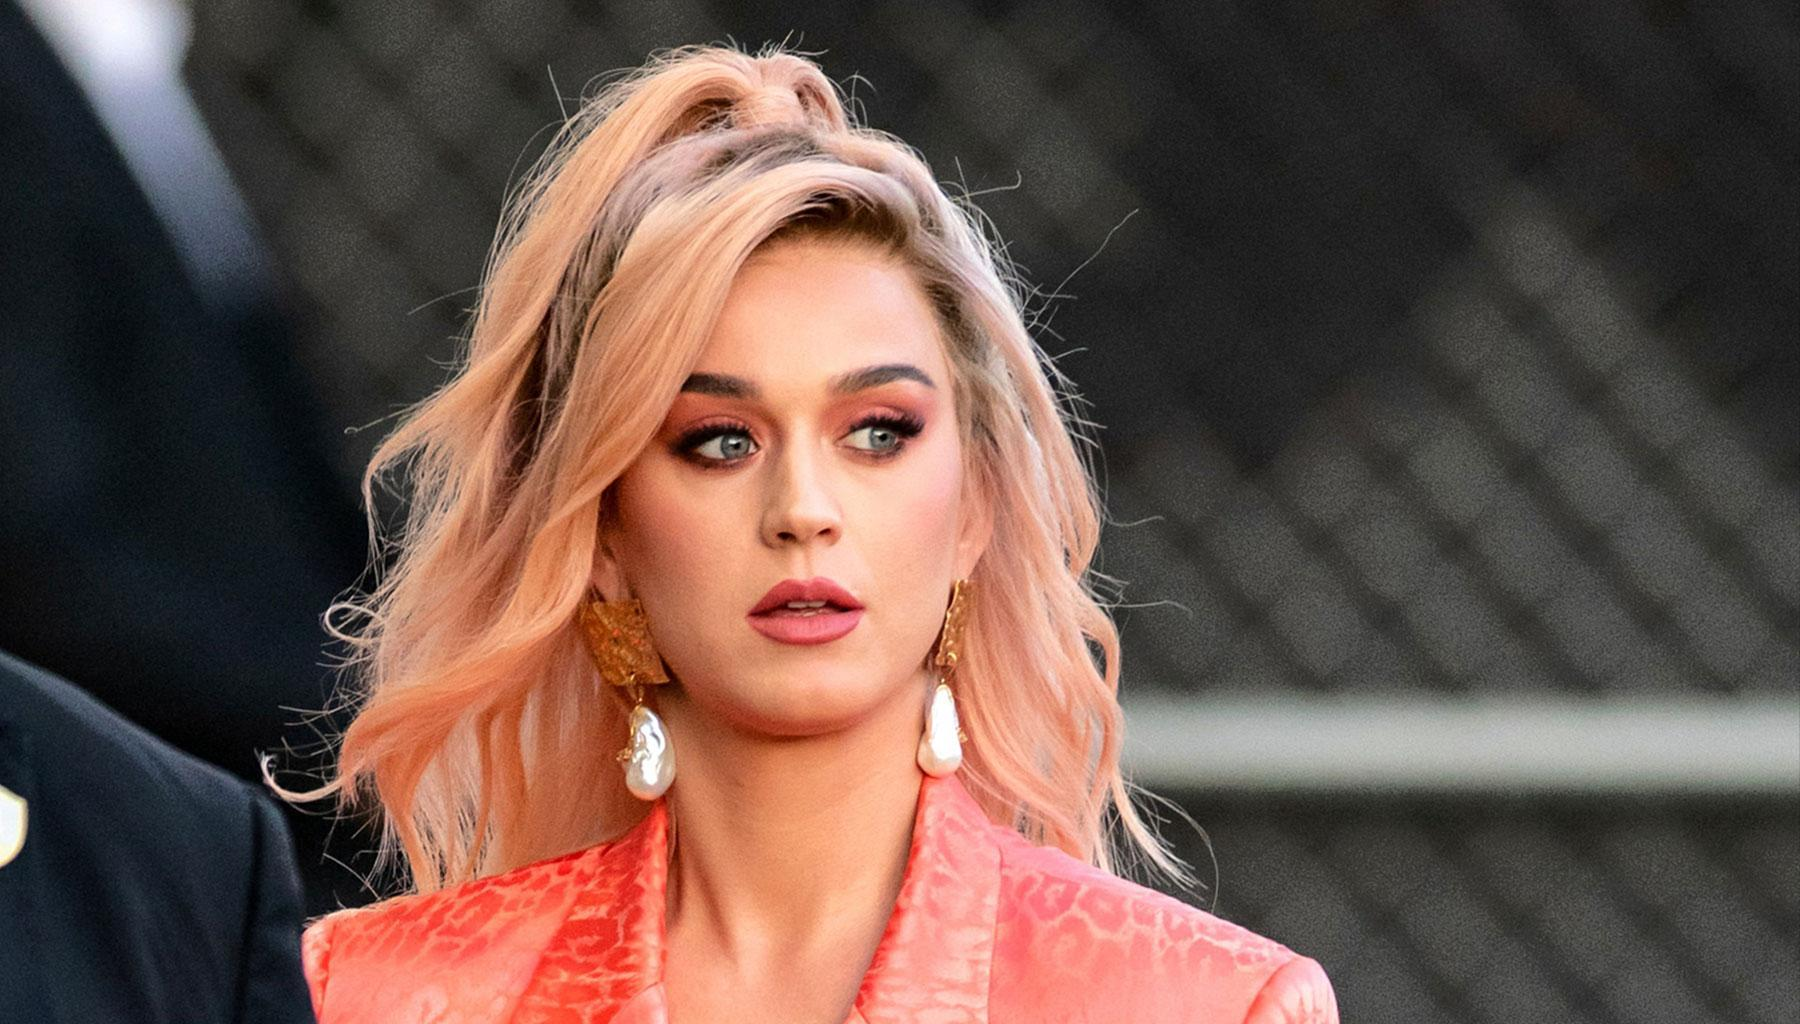 Katy Perry Talks About Staying Positive While Pregnant Amid The Quarantine - Here's How!